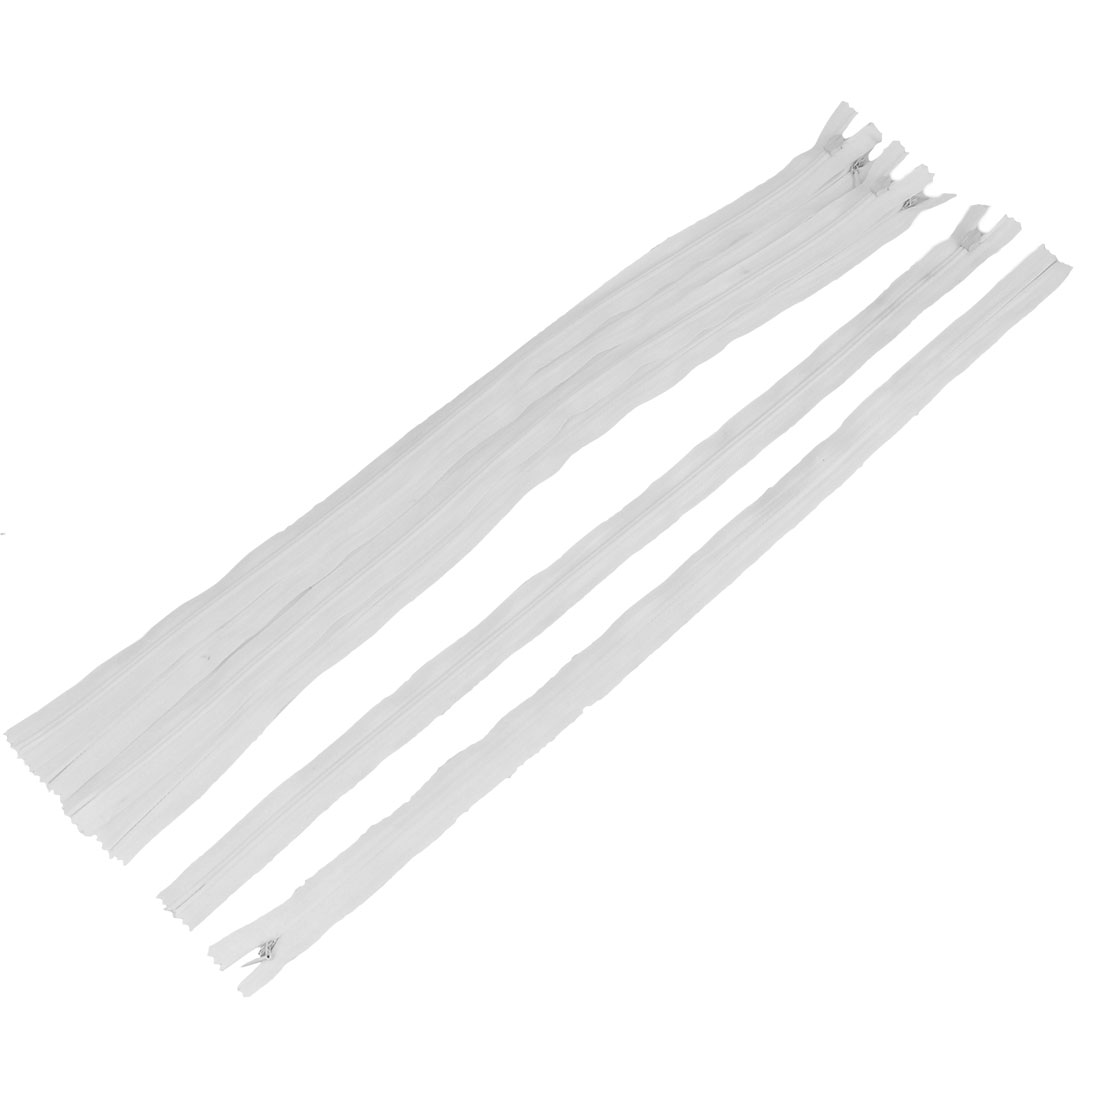 Home Tailor Dress Sewing Nylon Coil Invisible Zippers 50cm Length White 6pcs